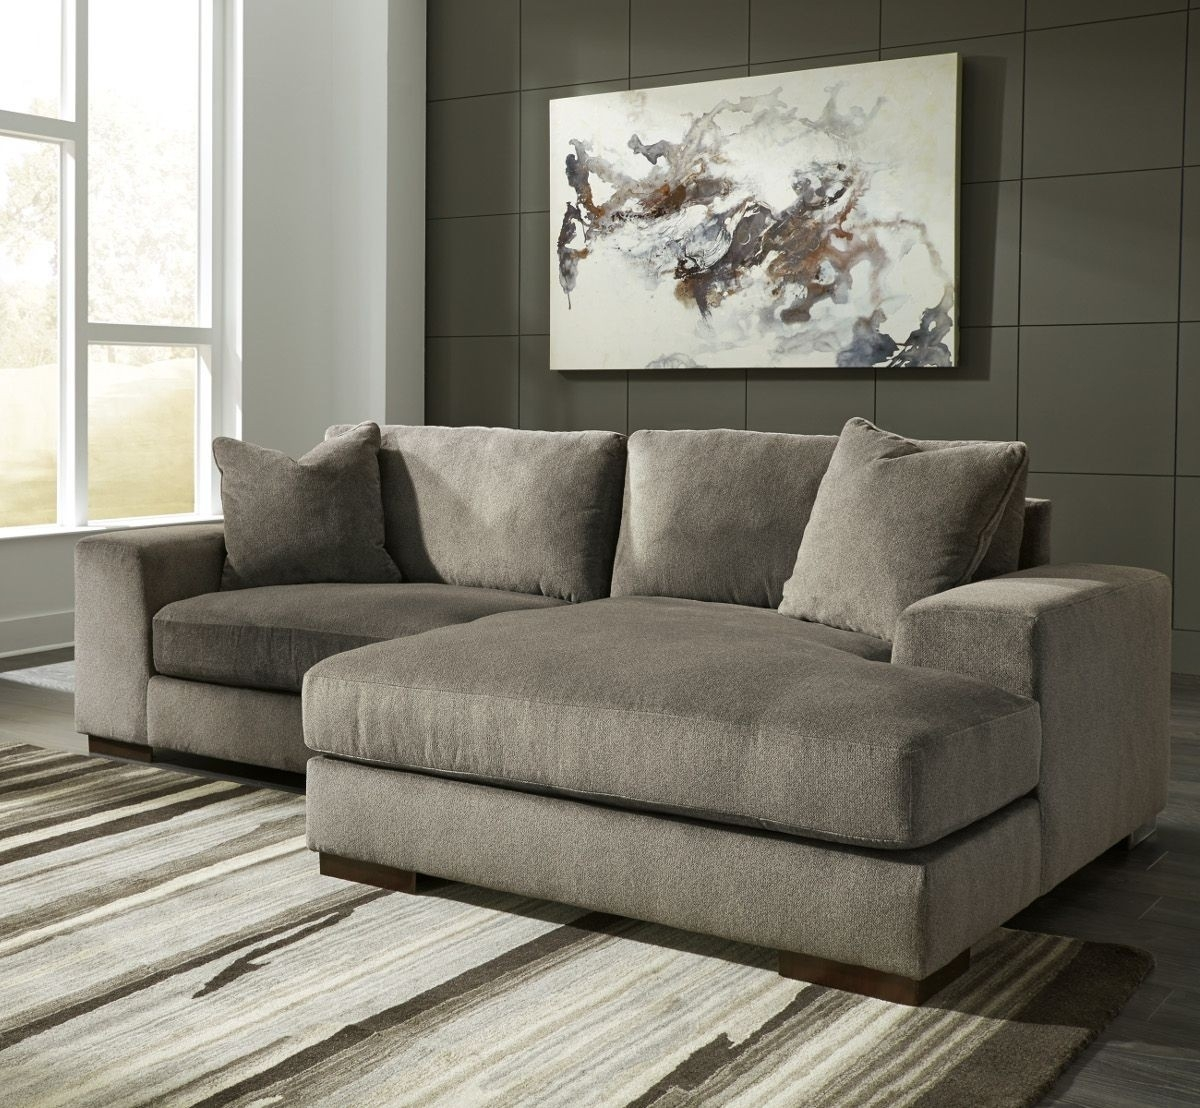 Ashley Furniture Manzani 2 Piece Sectional With Raf Chaise In Intended For Aspen 2 Piece Sectionals With Laf Chaise (View 16 of 25)